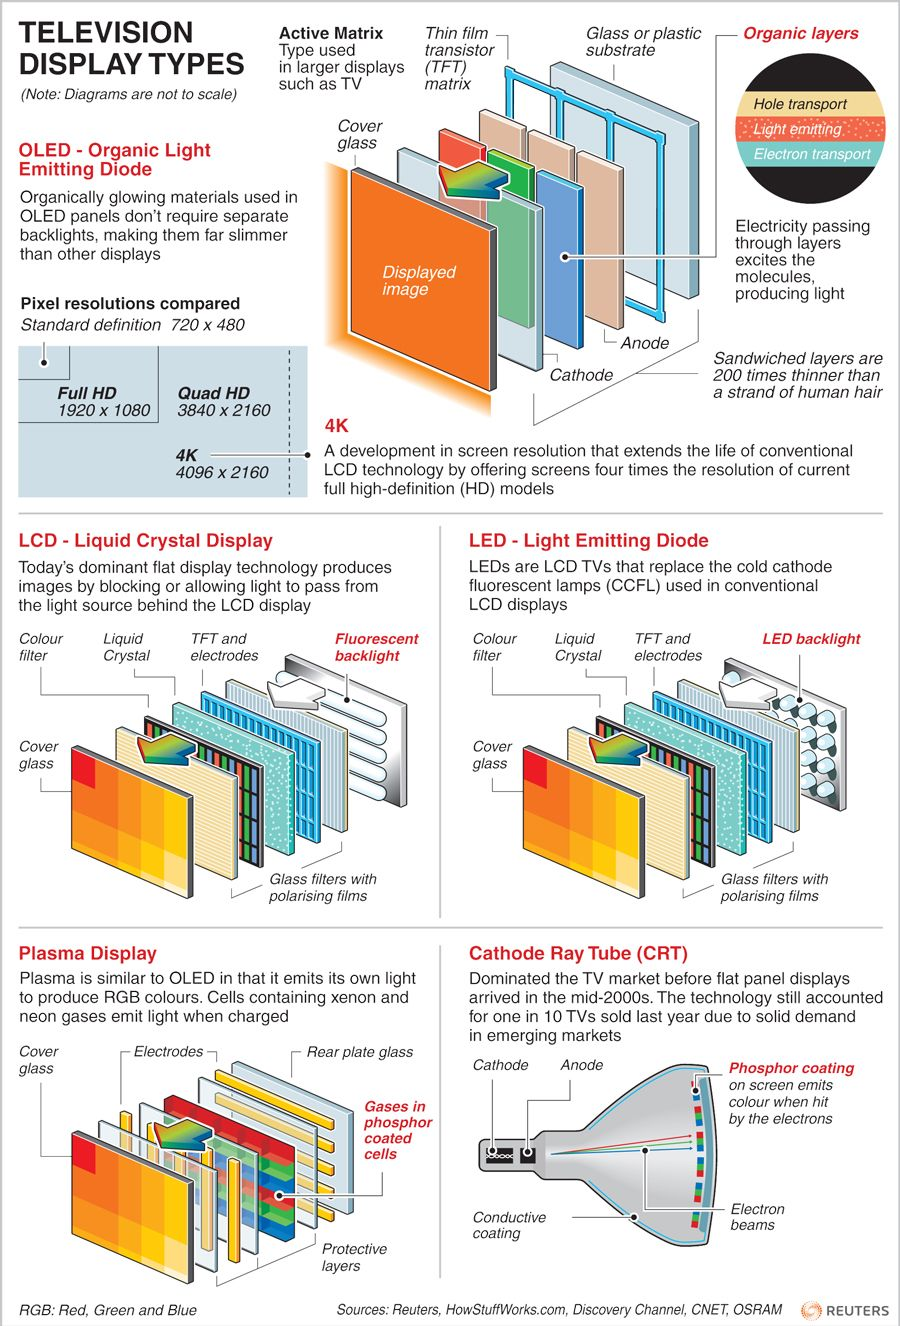 medium resolution of television display types how it works for oled lcd led plasma and crt tvs via reuters april 2012